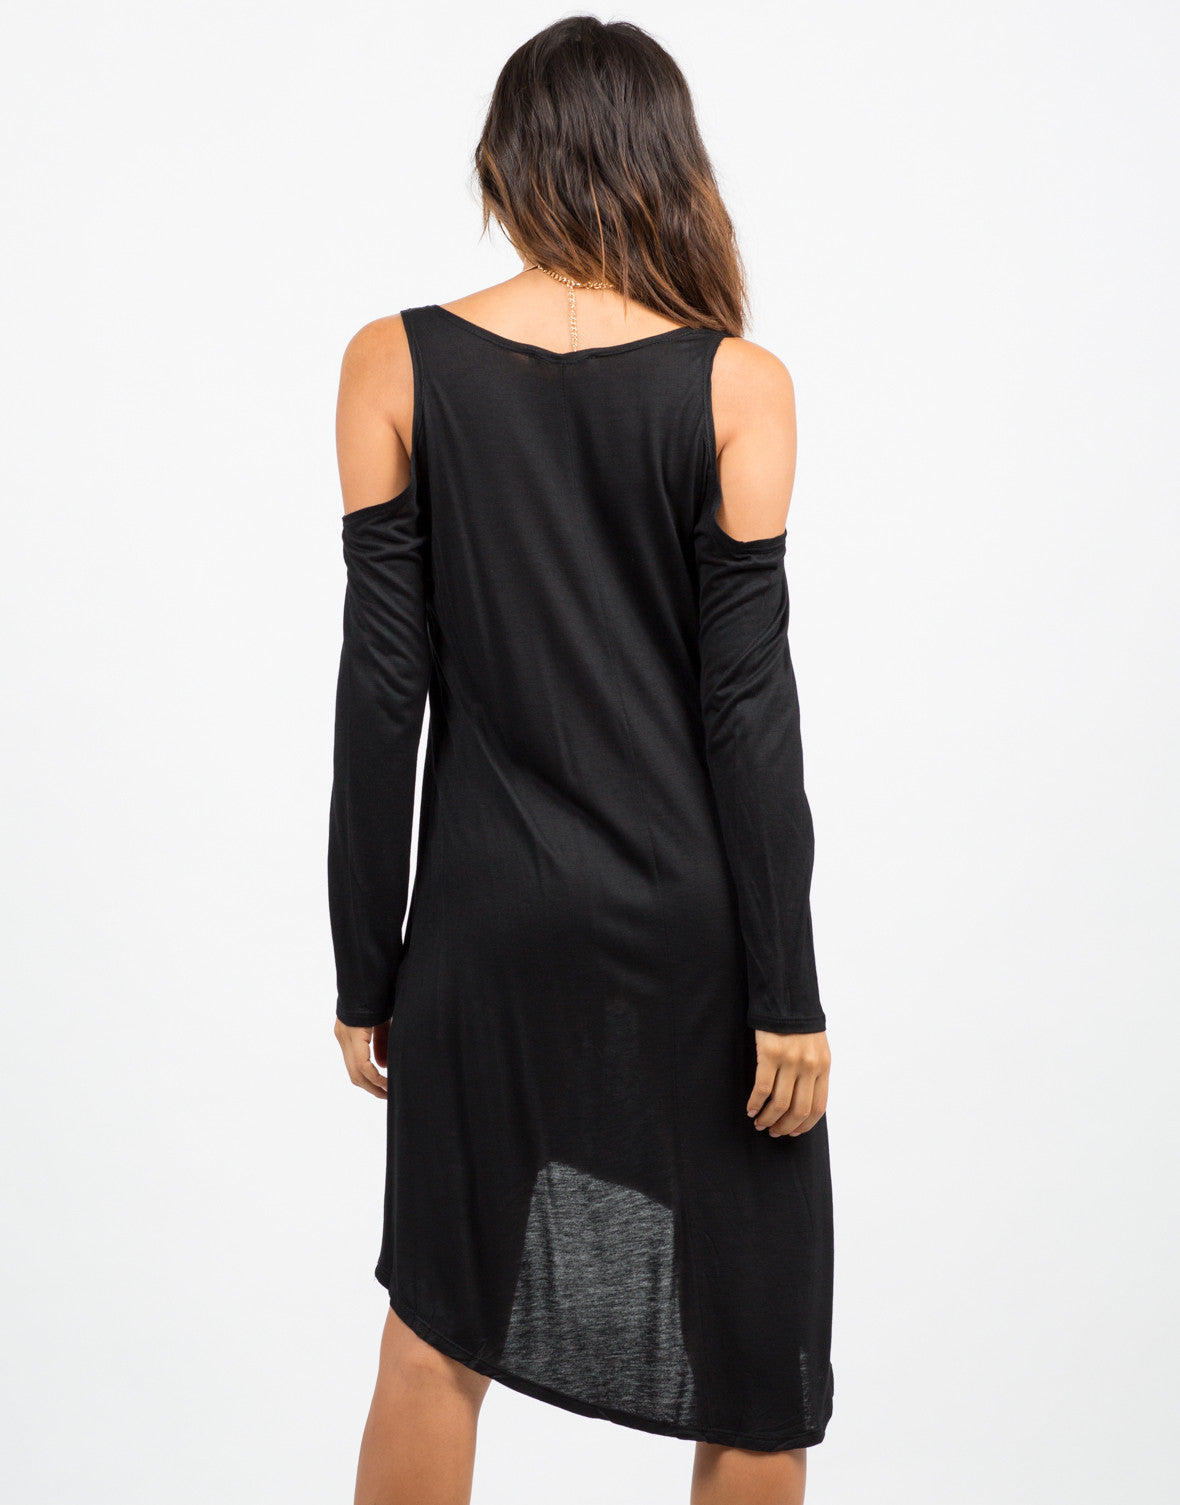 Back View of Cold Shoulder Dress